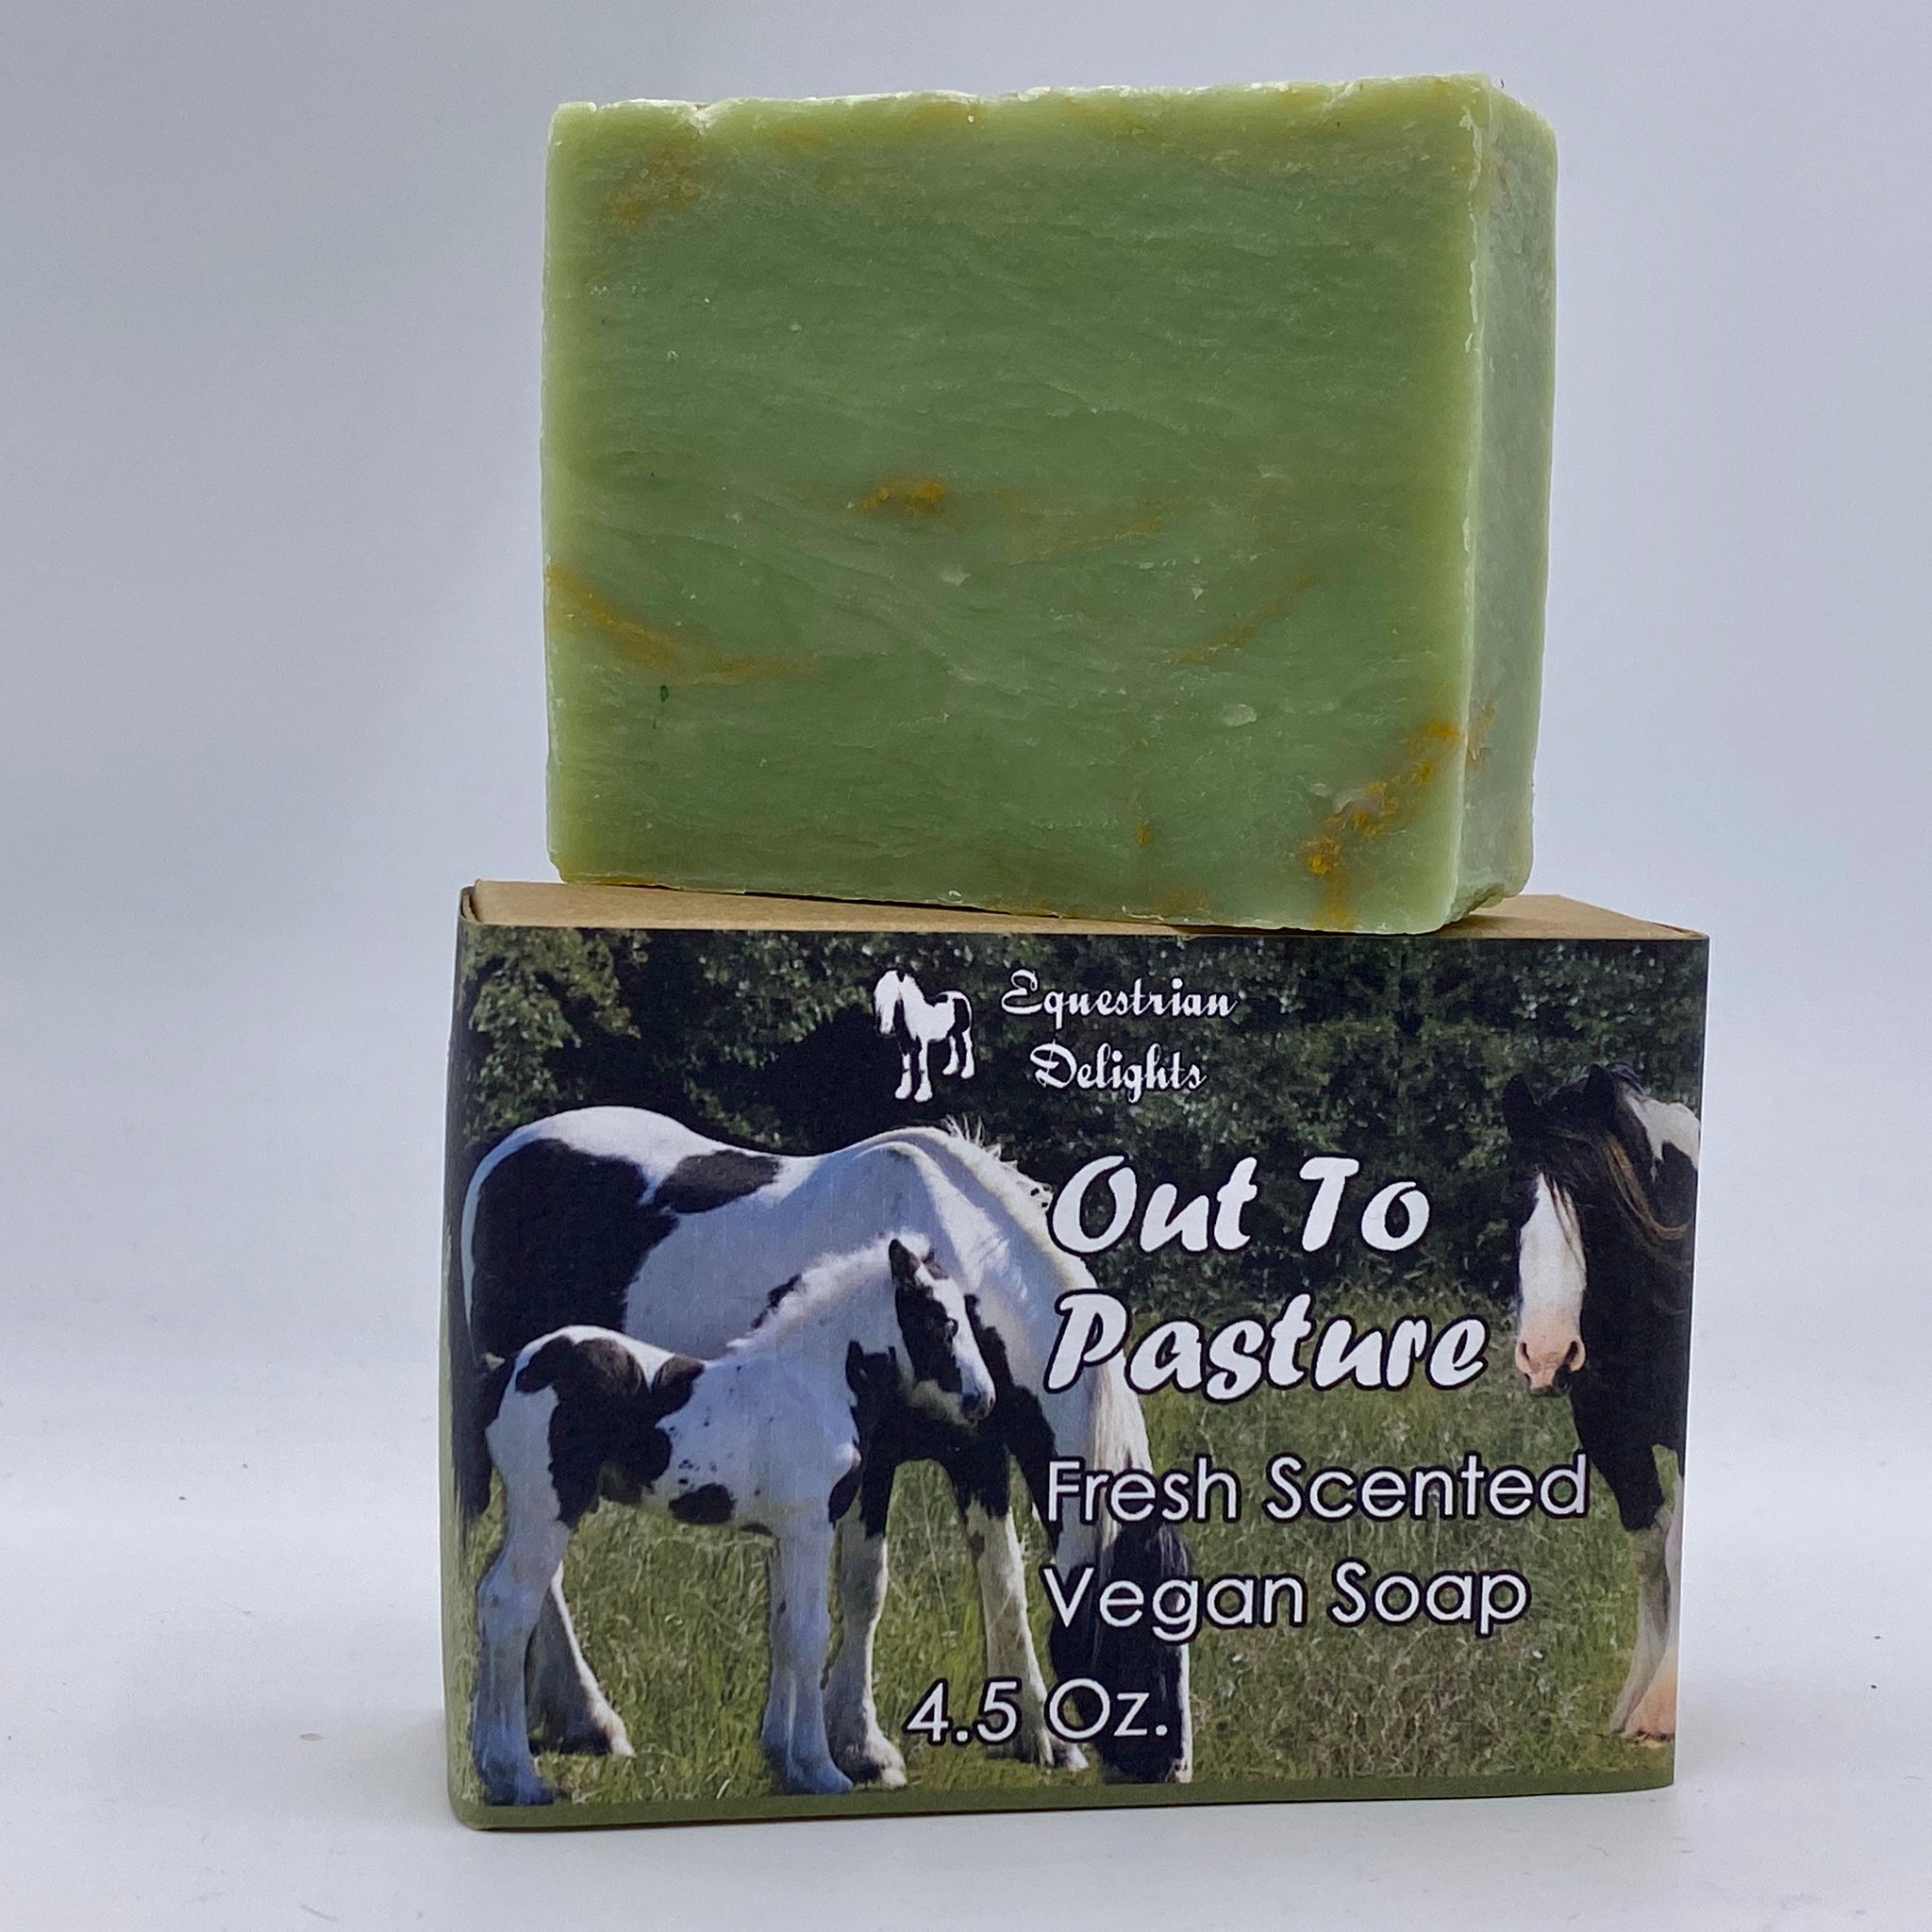 Fresh Clover Scented Vegan Soap, Out To Pasture Equestrian Horse Lover Soap